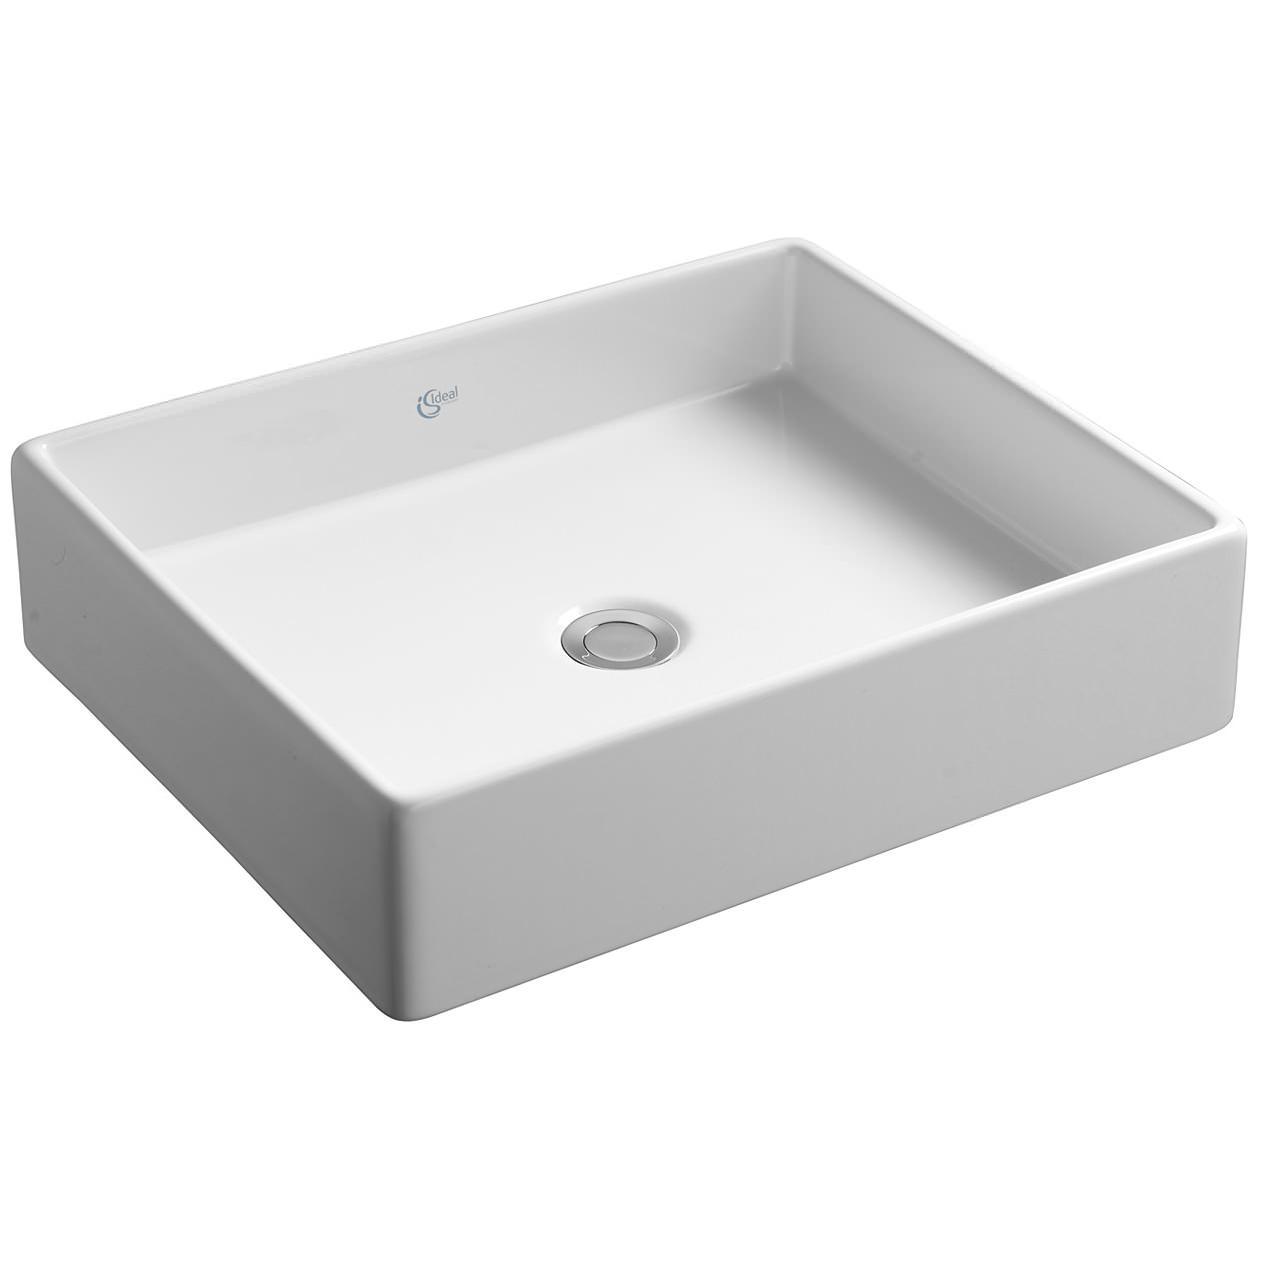 Ideal Standard Strada 500mm Vessel Basin - No Tap Hole